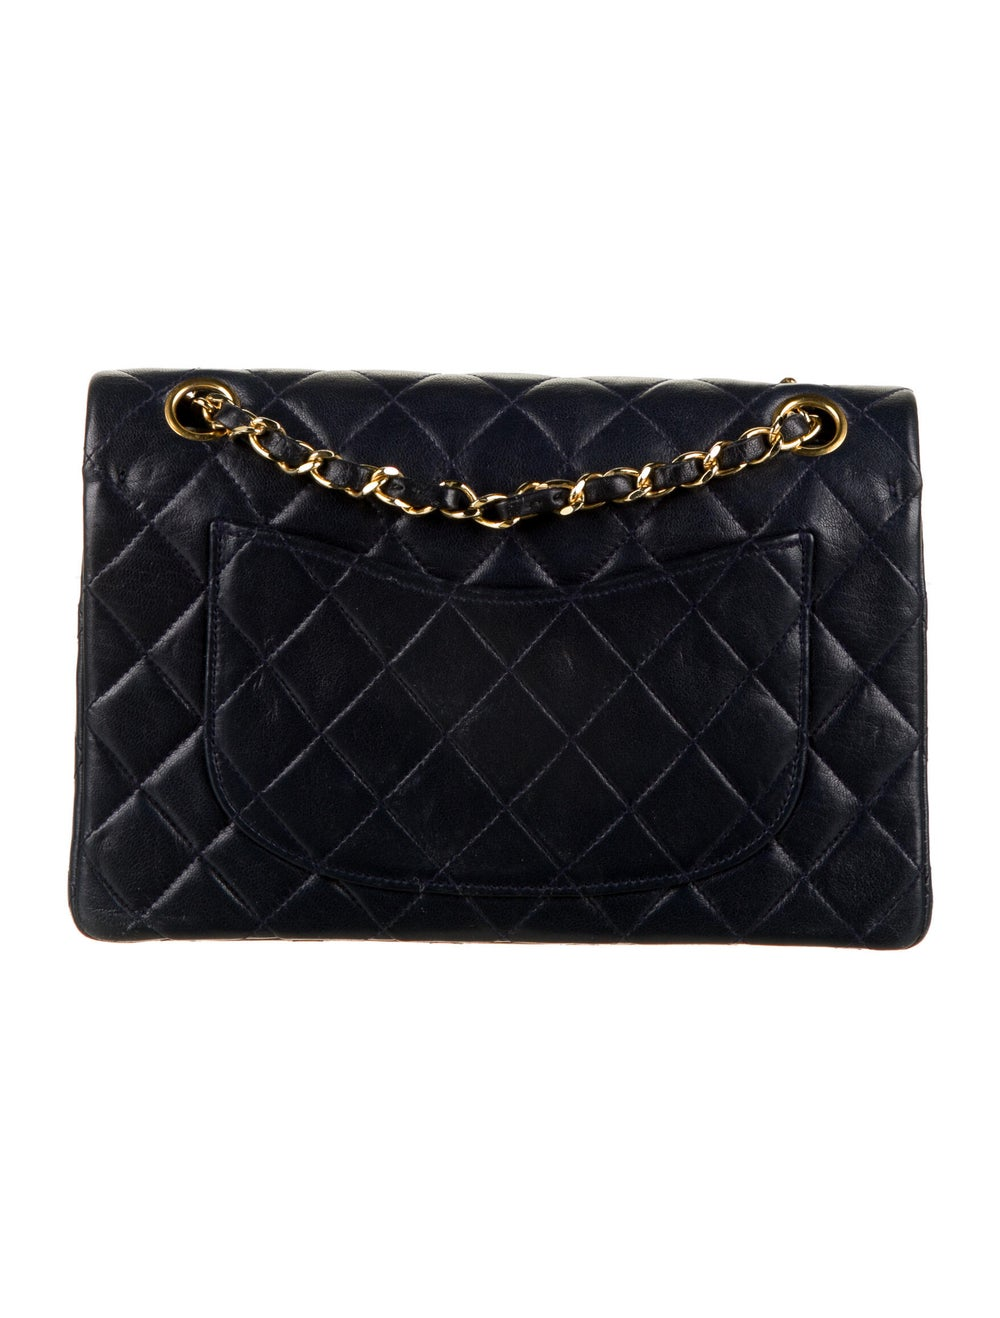 Chanel Vintage Classic Small Double Flap Bag Blue - image 4